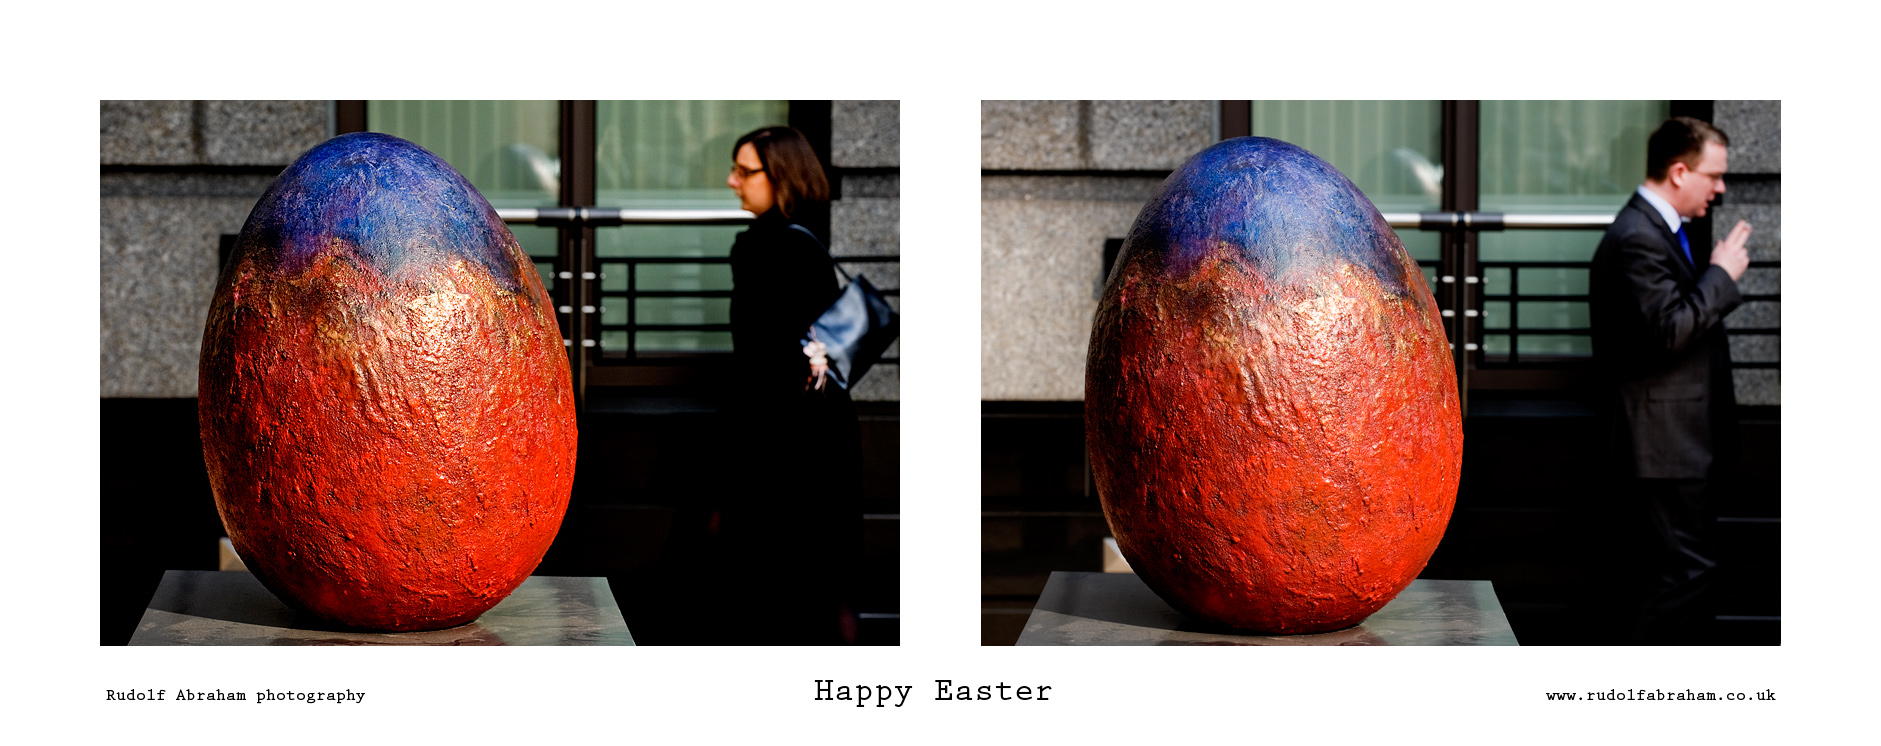 Happy Easter from Rudolf Abraham photography